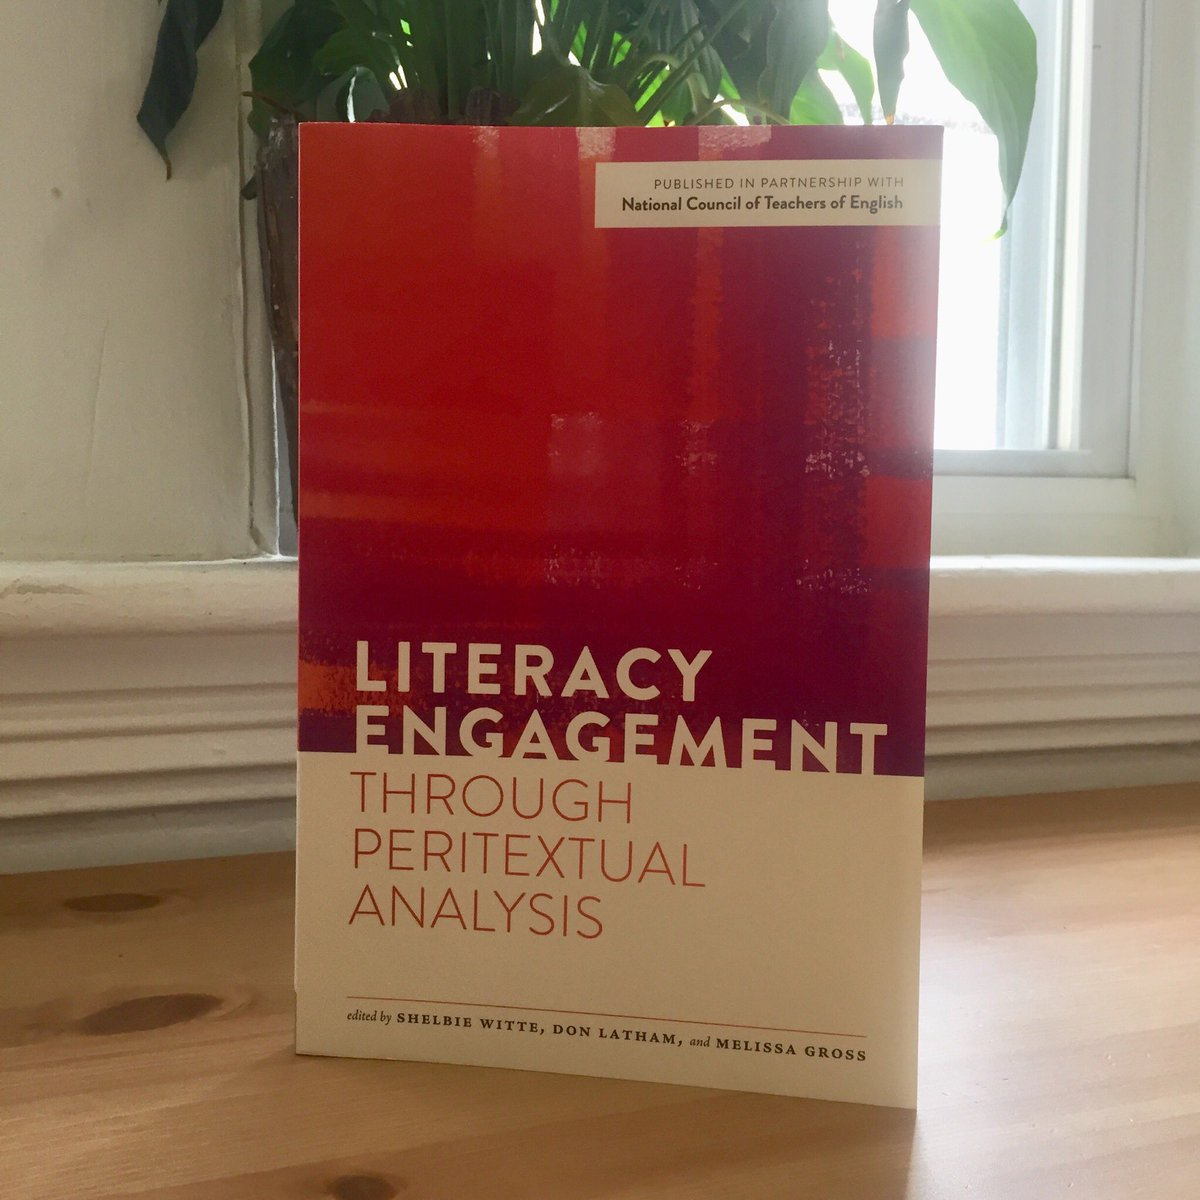 Super excited to read this new volume edited by @shelbiewitte, Don Latham, and Melissa Gross! Interested to learn more about peritextual analysis 🤔🤯 #edchat